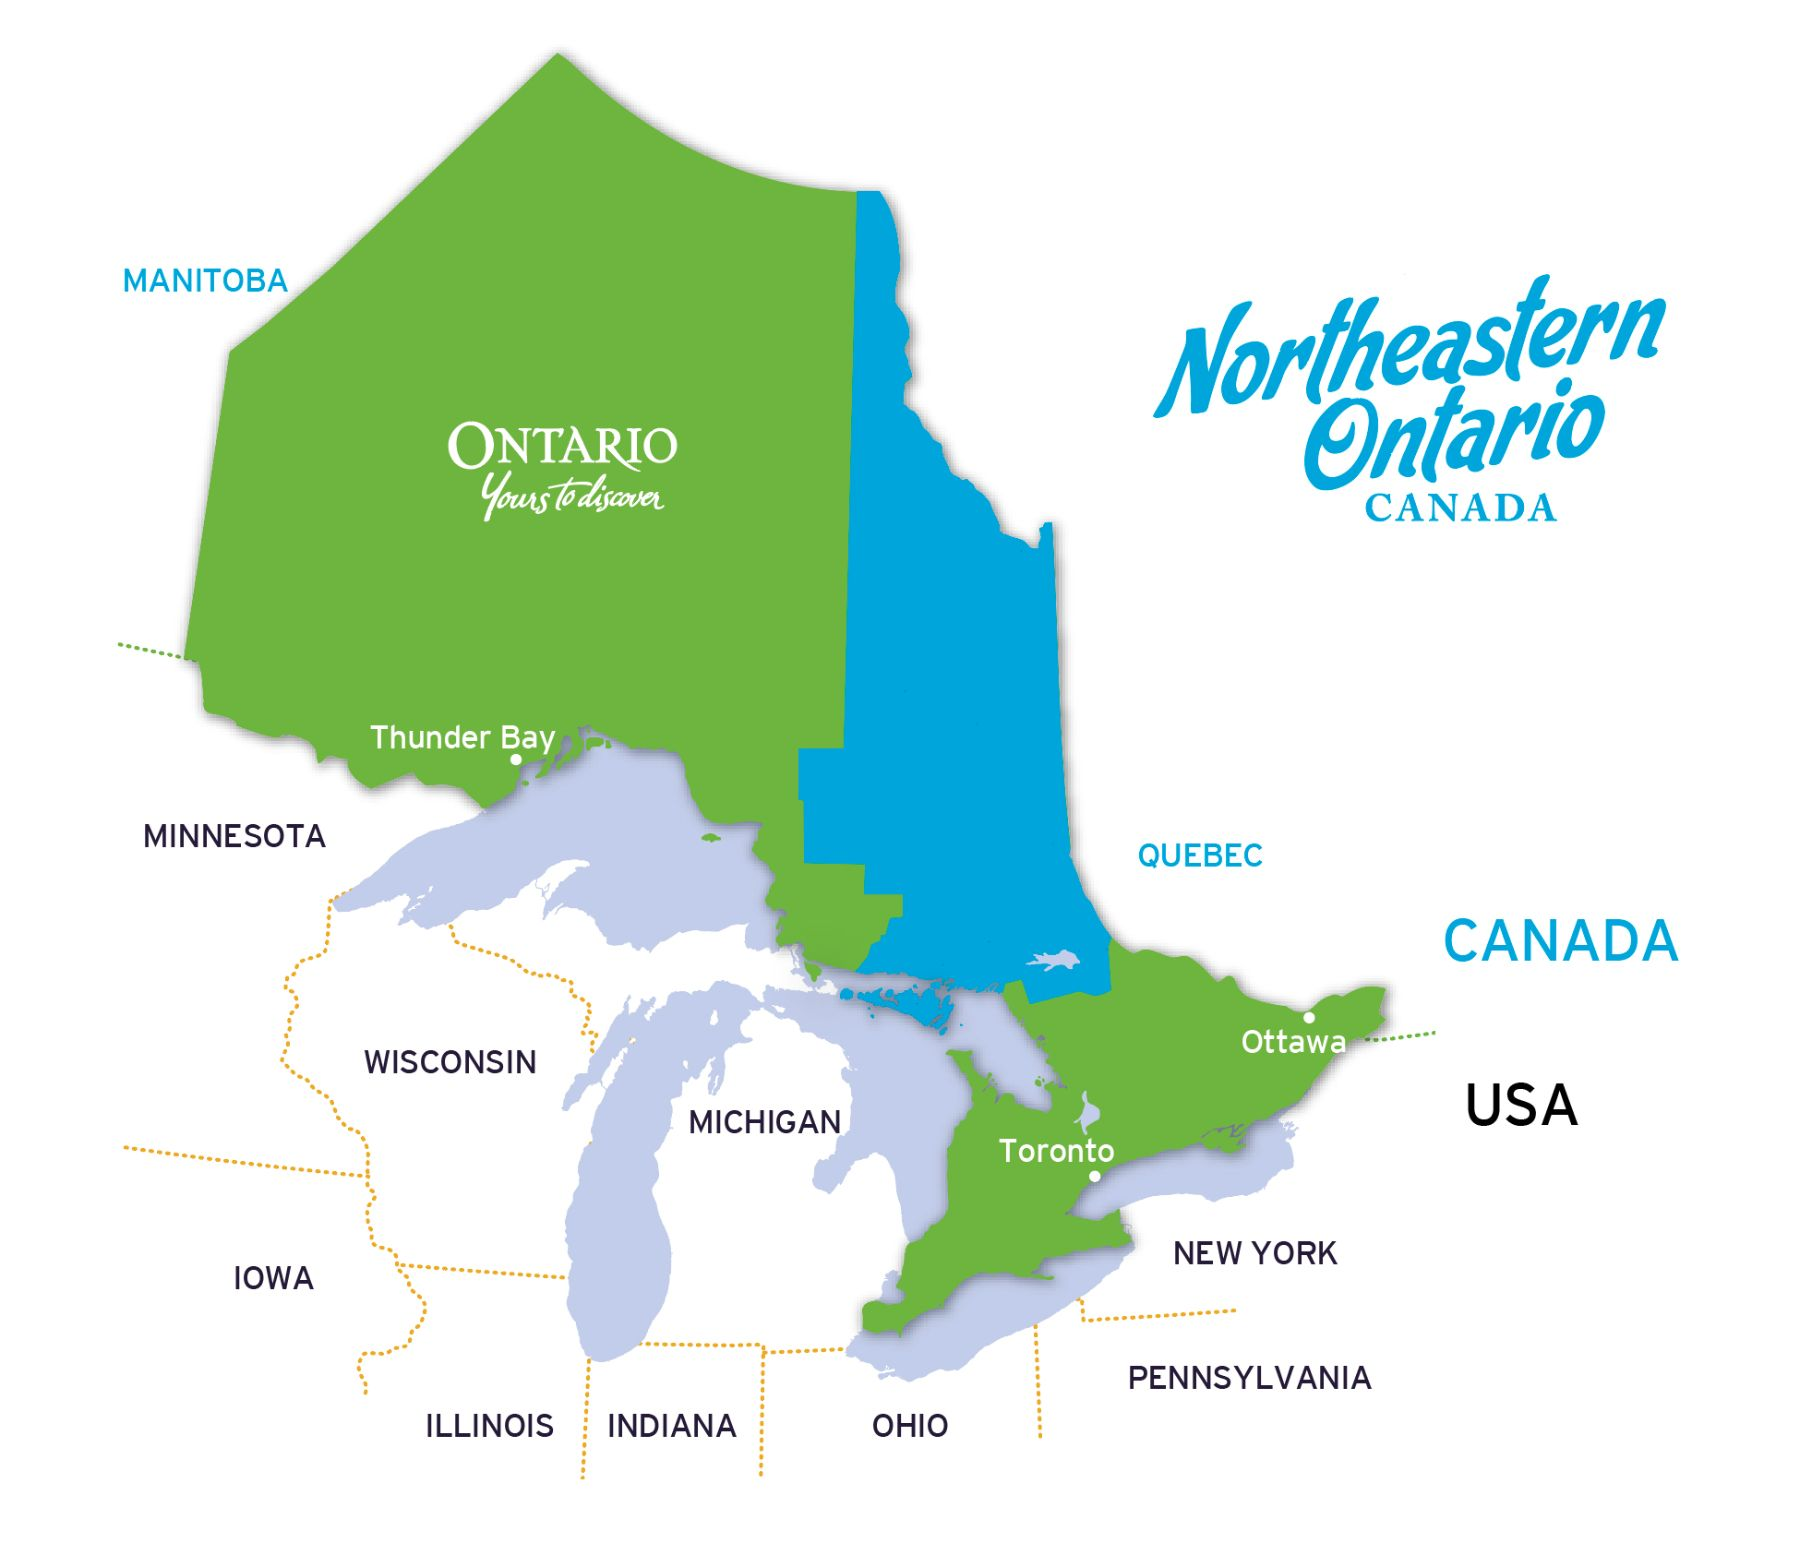 Getting to Northeastern Ontario - Map of the Region